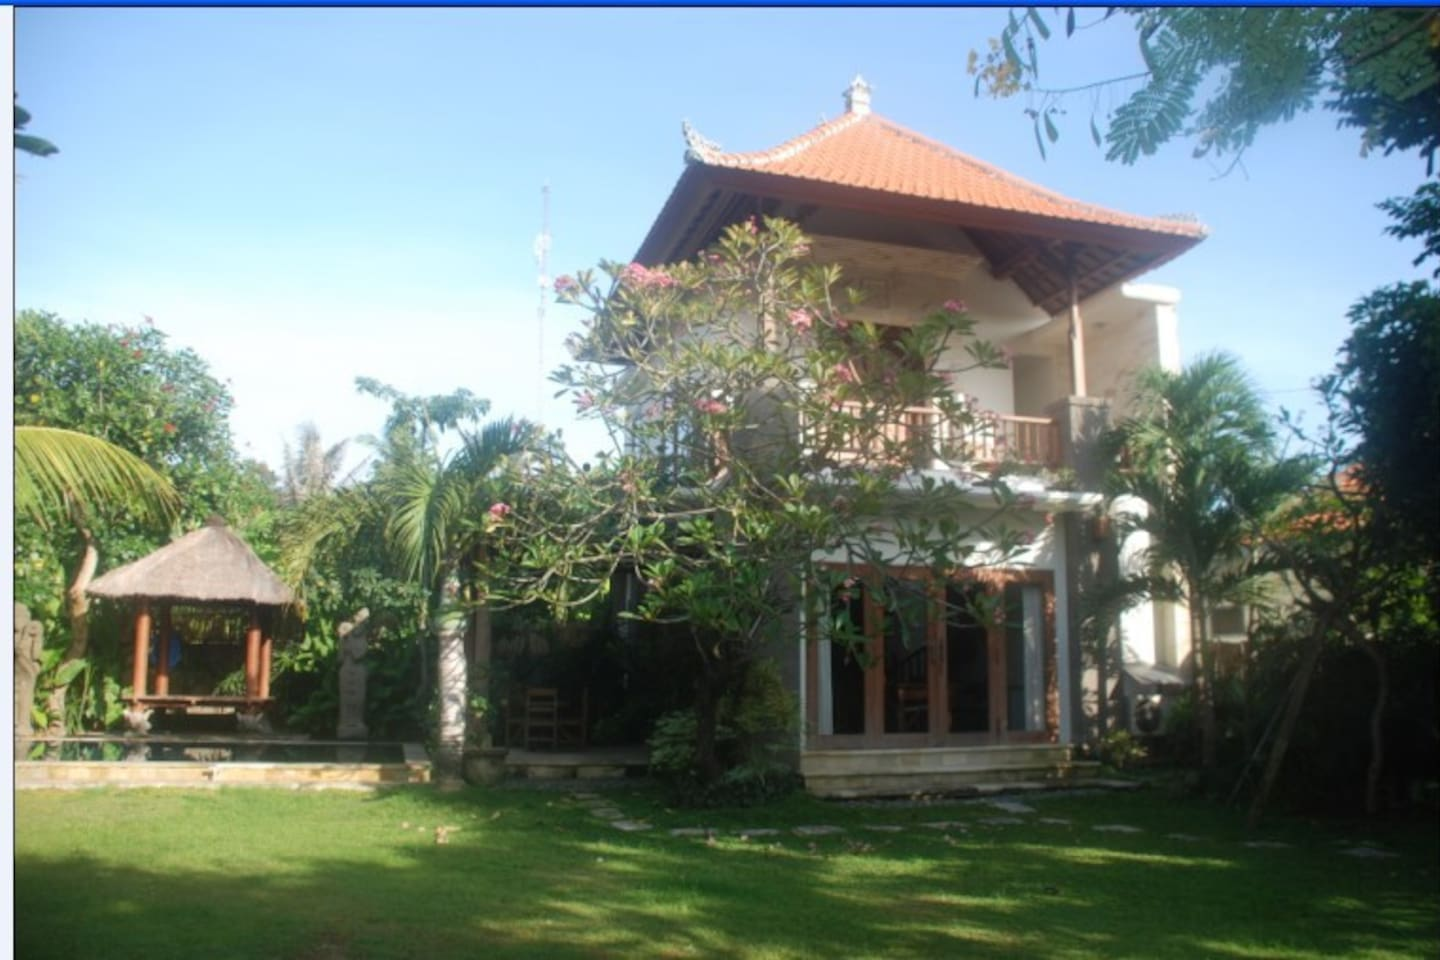 Antique furnished self contained Villa, behind Cambodia tree. With Pool, Thatched Roof Bale, kitchen, en-suite bathroom, and Garden. Super fast fibre optic internet 10MBPS LAN and WIFI